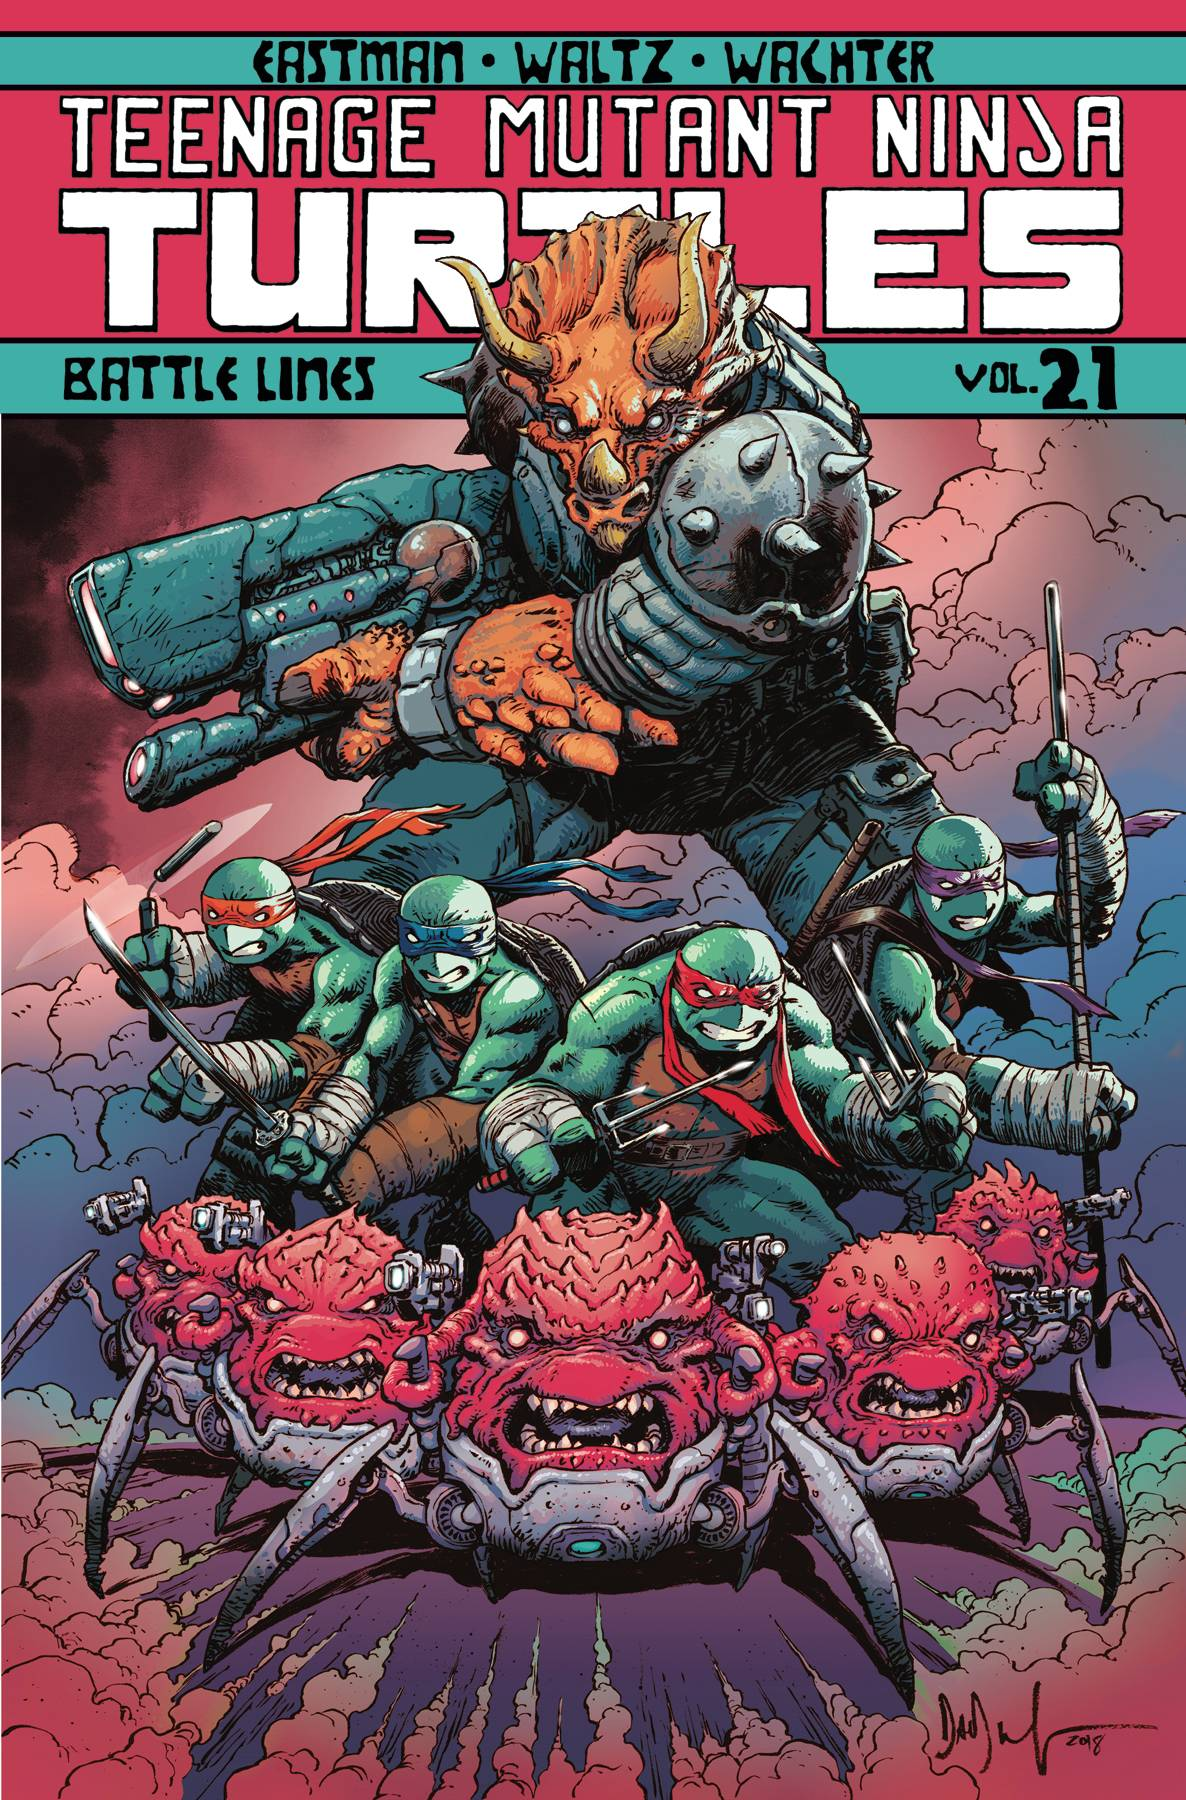 TMNT ONGOING TP 21 BATTLE LINES.jpg